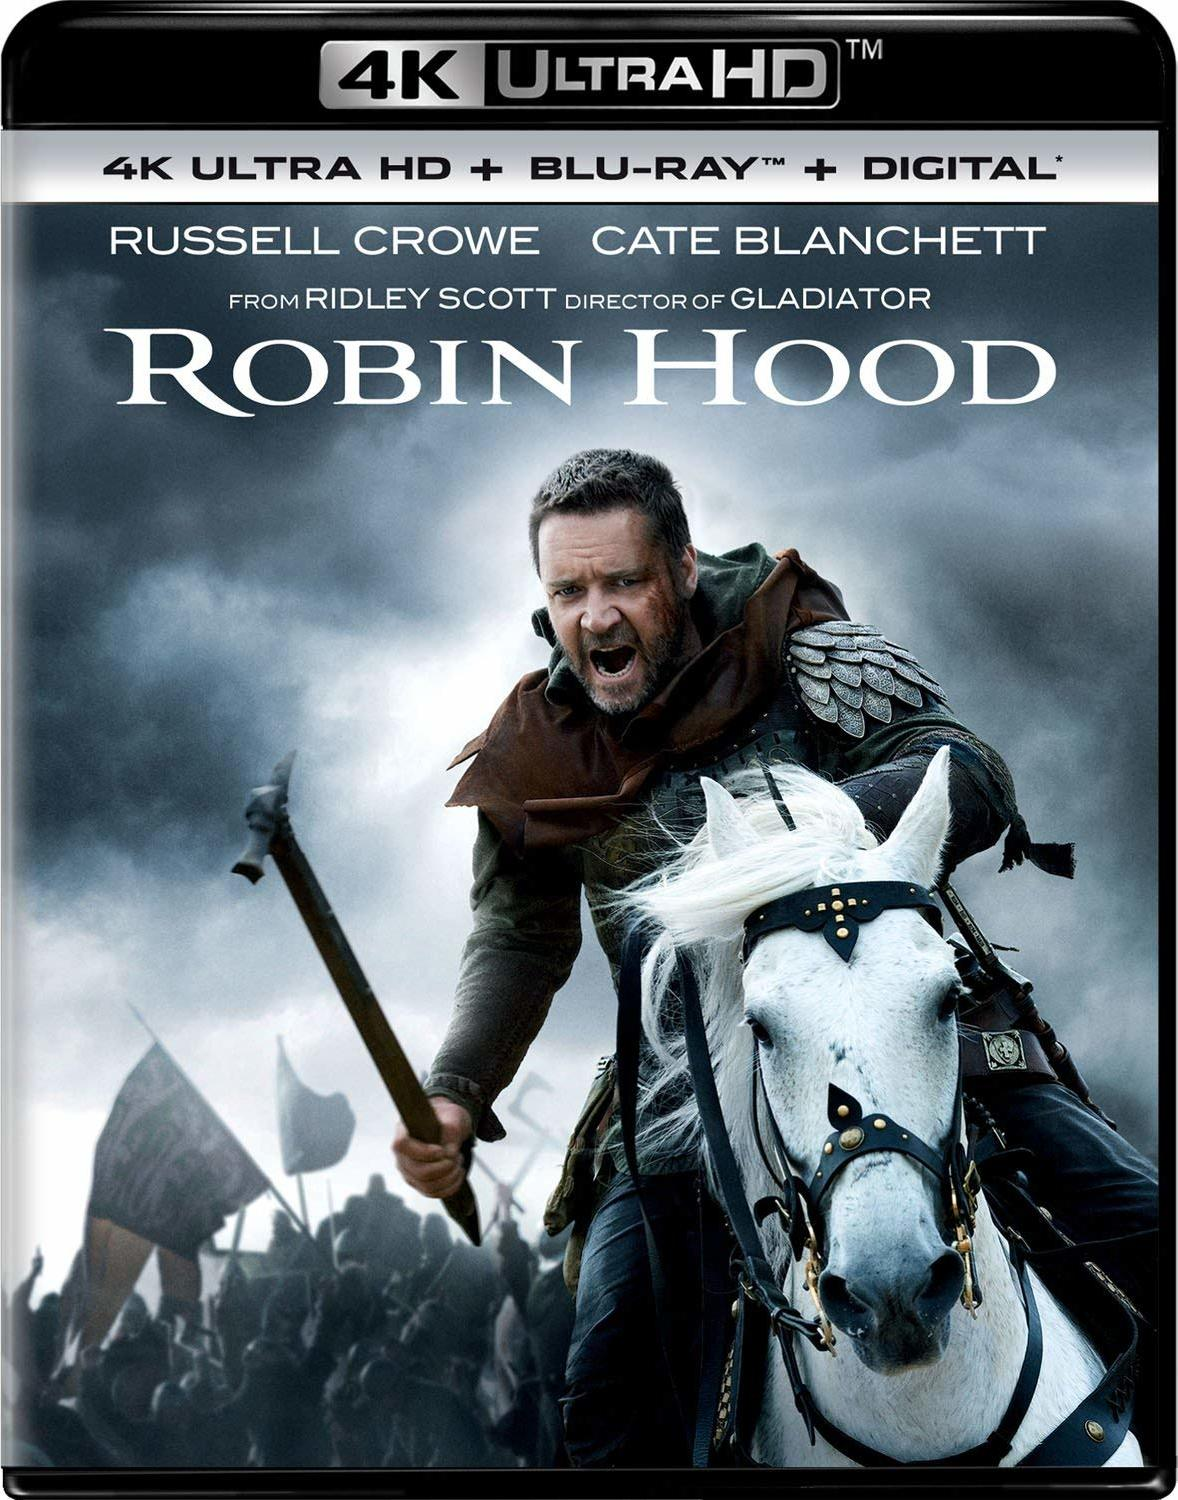 Robin Hood (2010) 4K Ultra HD Blu-ray